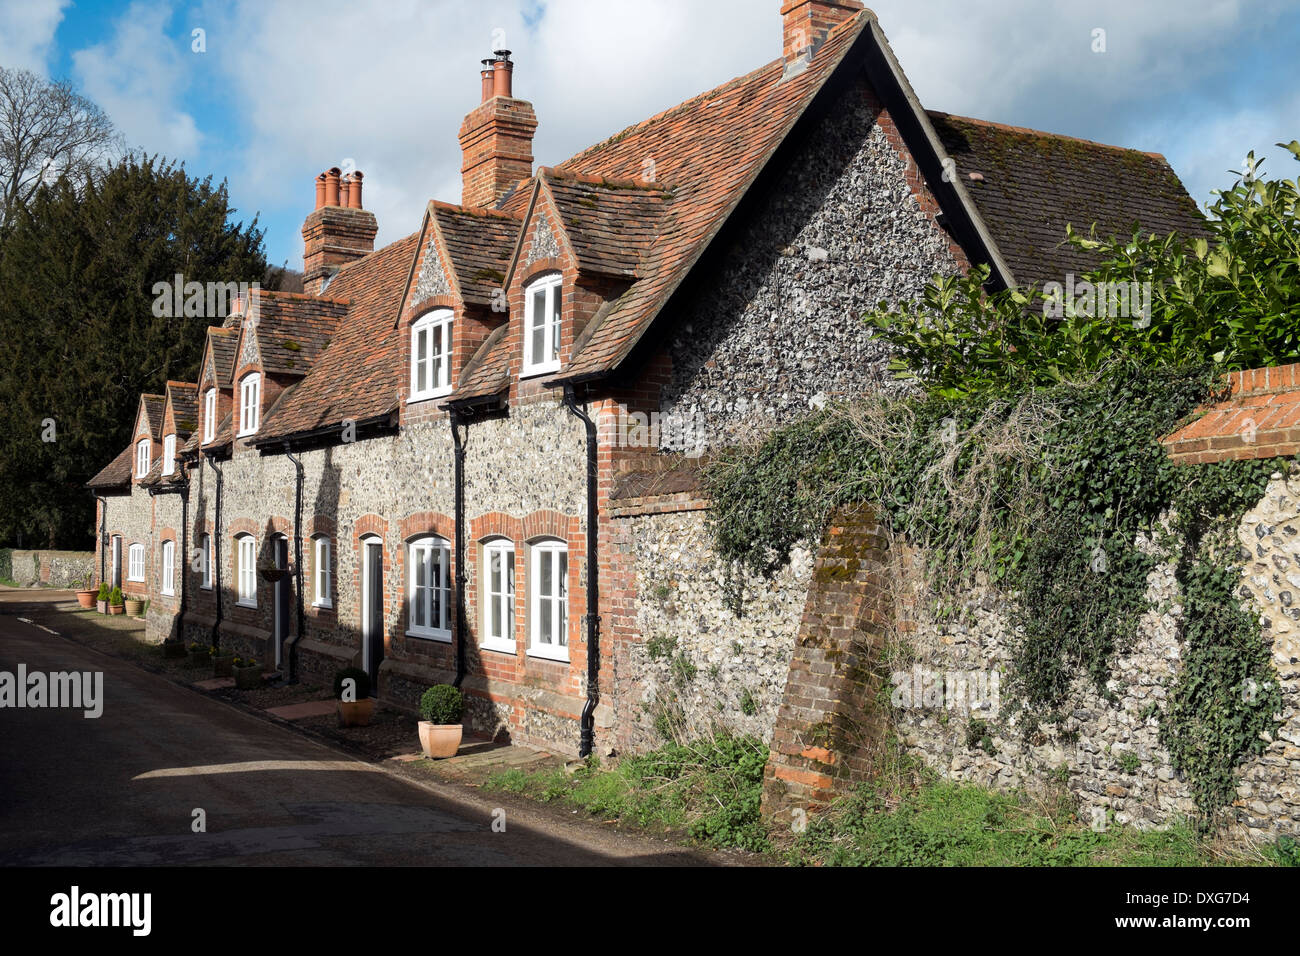 Row of brick and flint terraced cottages Hambleden village Buckinghamshire UK - Stock Image